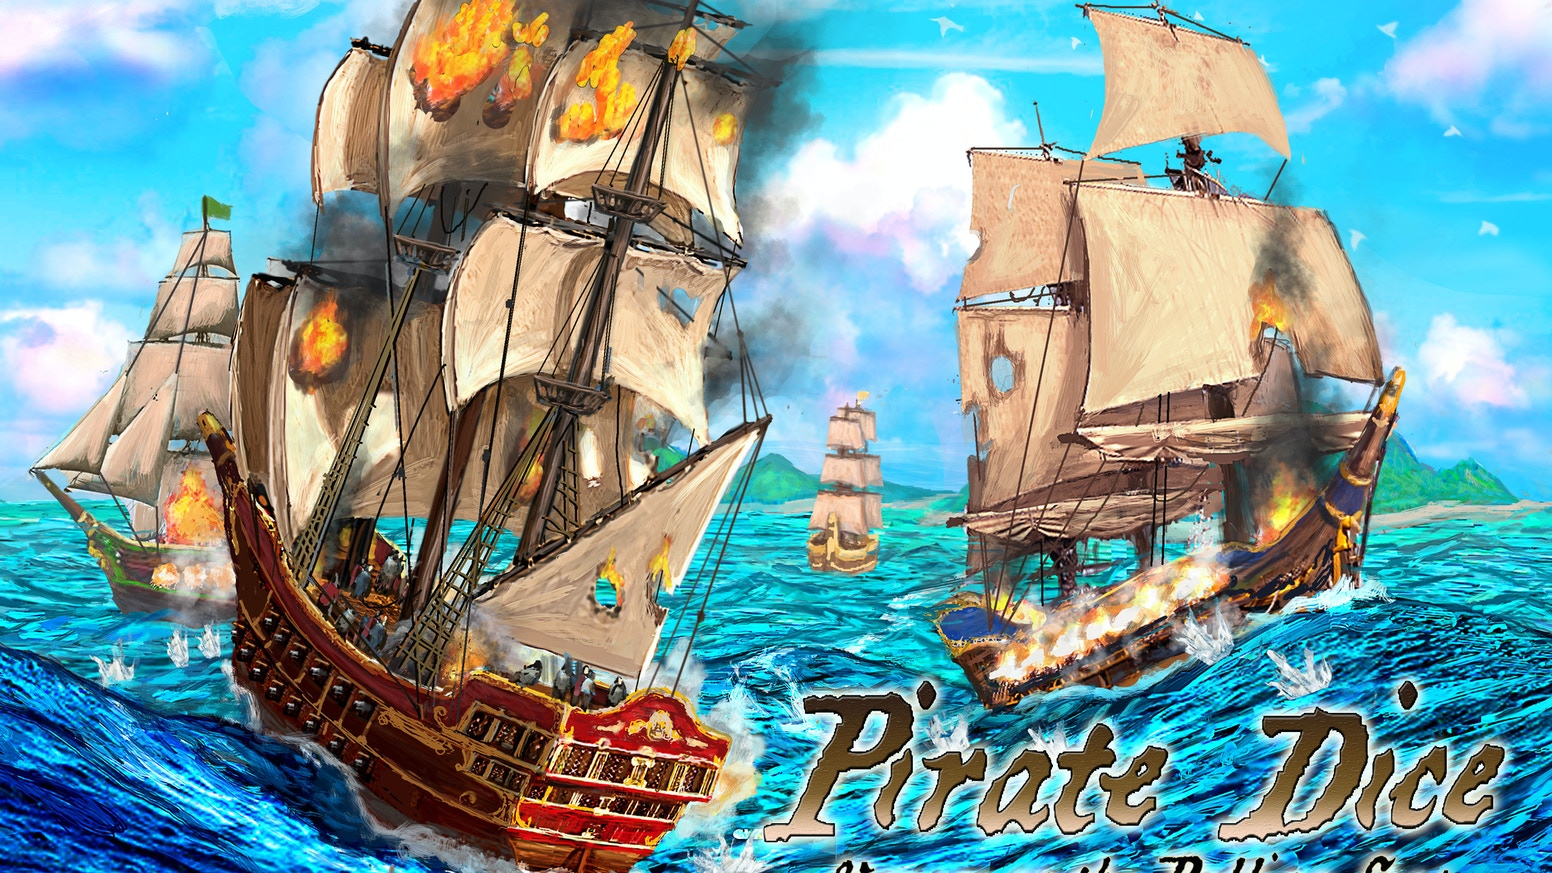 Pirate Dice is a game for 2 to 4 players that pits pirate vs. pirate in an epic race to capture and escape with the lost treasure.